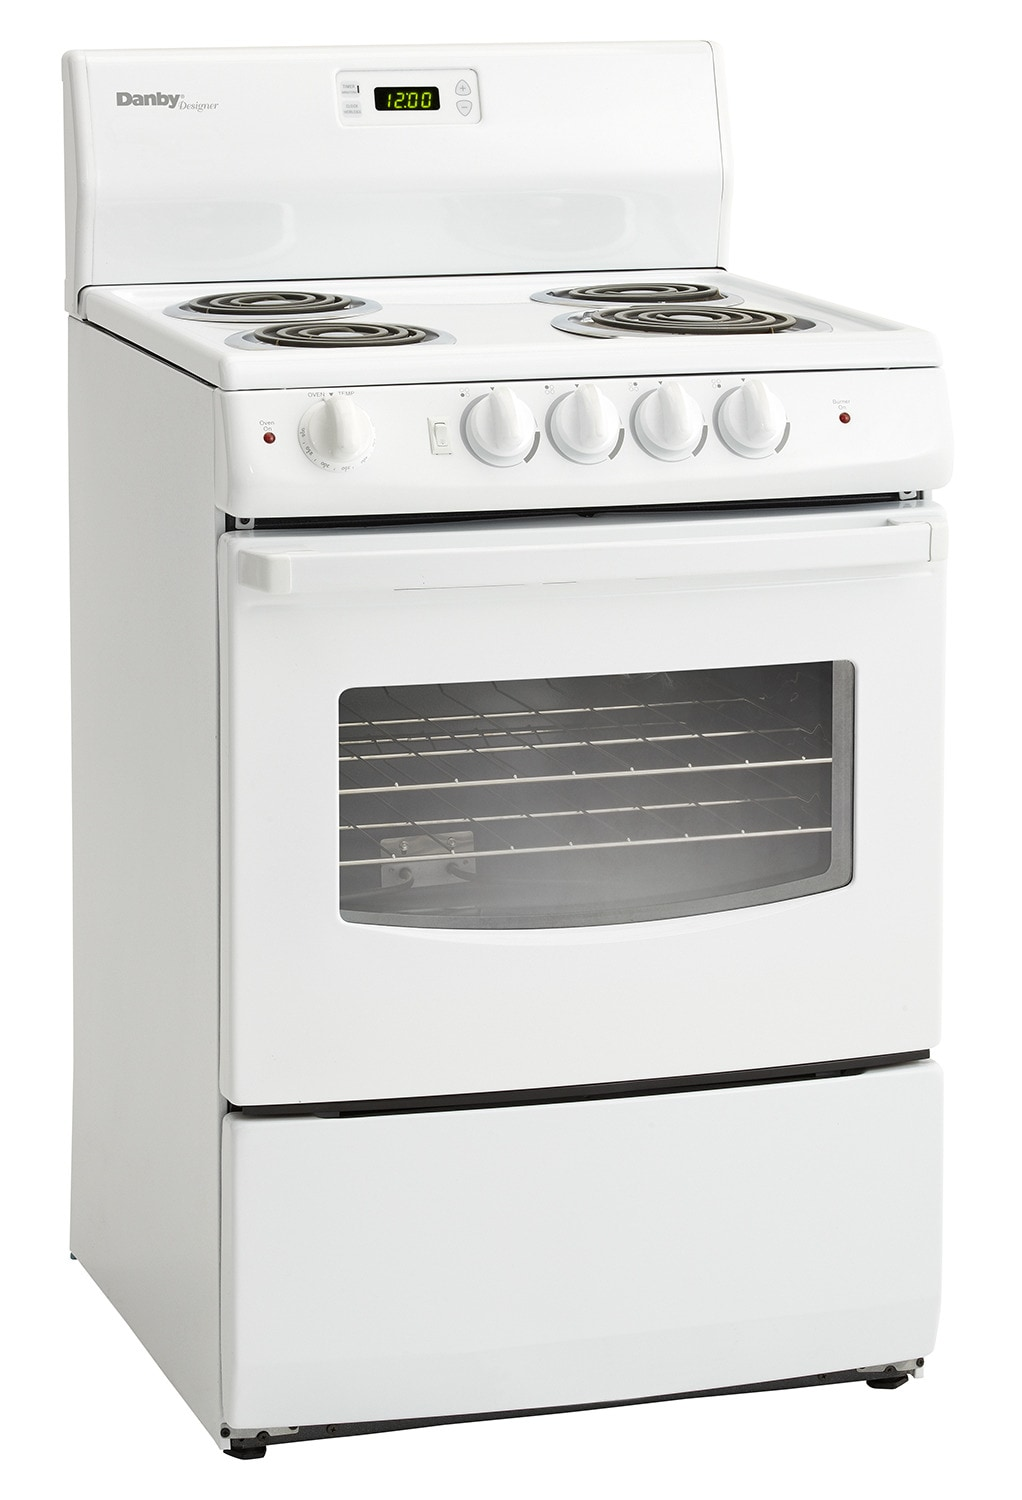 Cooking Products - Danby White Freestanding Electric Range (3 Cu. Ft.) - DER241WC